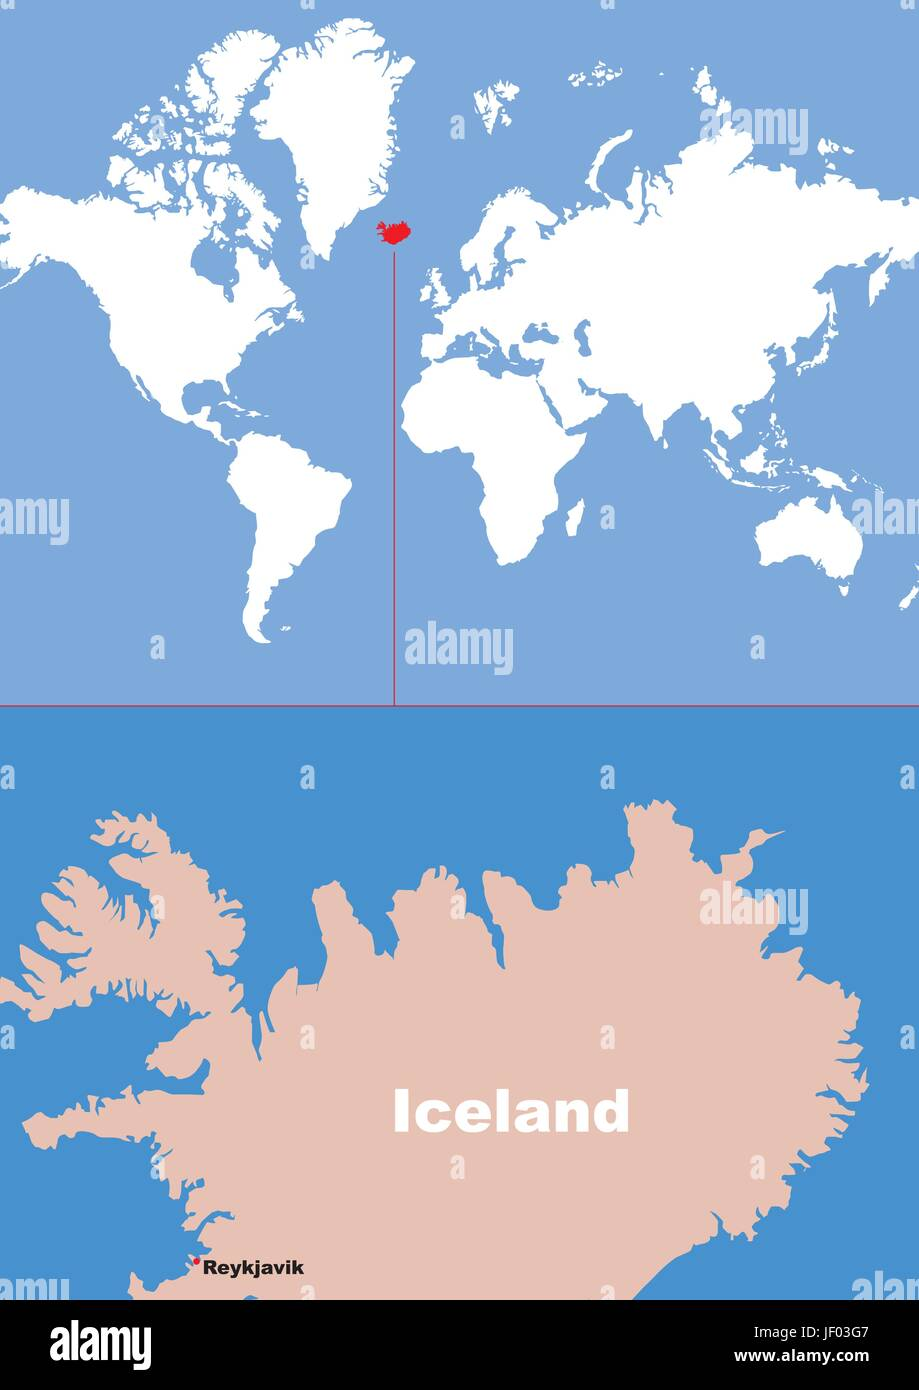 card, iceland, atlas, map of the world, map, card, iceland ... on england on europe map, south pacific islands world map, iceland on a map of europe, show iceland on world map, iceland map world atlas, island on world map, ascension island map, monster island map, java on world map, reykjavik iceland on world map, latvia on world map, kenya on world map, namibia on world map, easter island map, iceland location on globe, iceland on a canada map, digimon world 1 map,